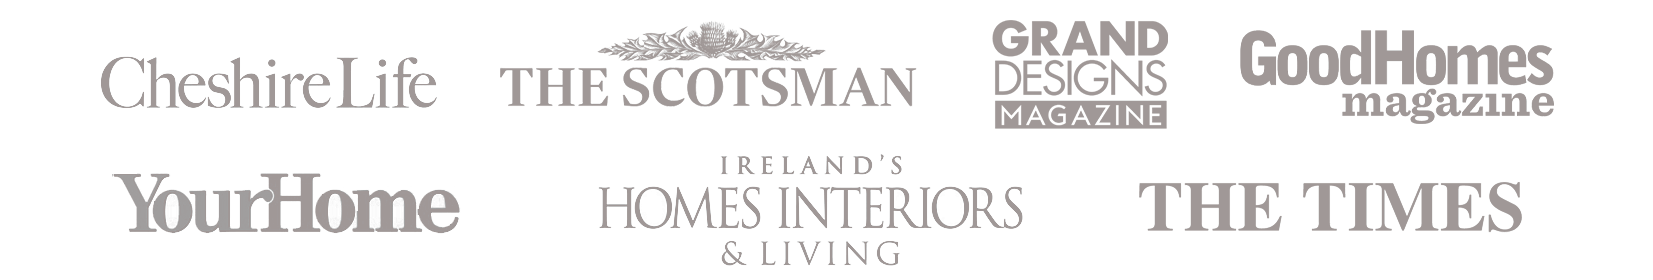 As seen in Cheshire Life, Scotsman, Grand Designs Magazine, Good Homes, Your Home and Home Interiors and Living Magazine